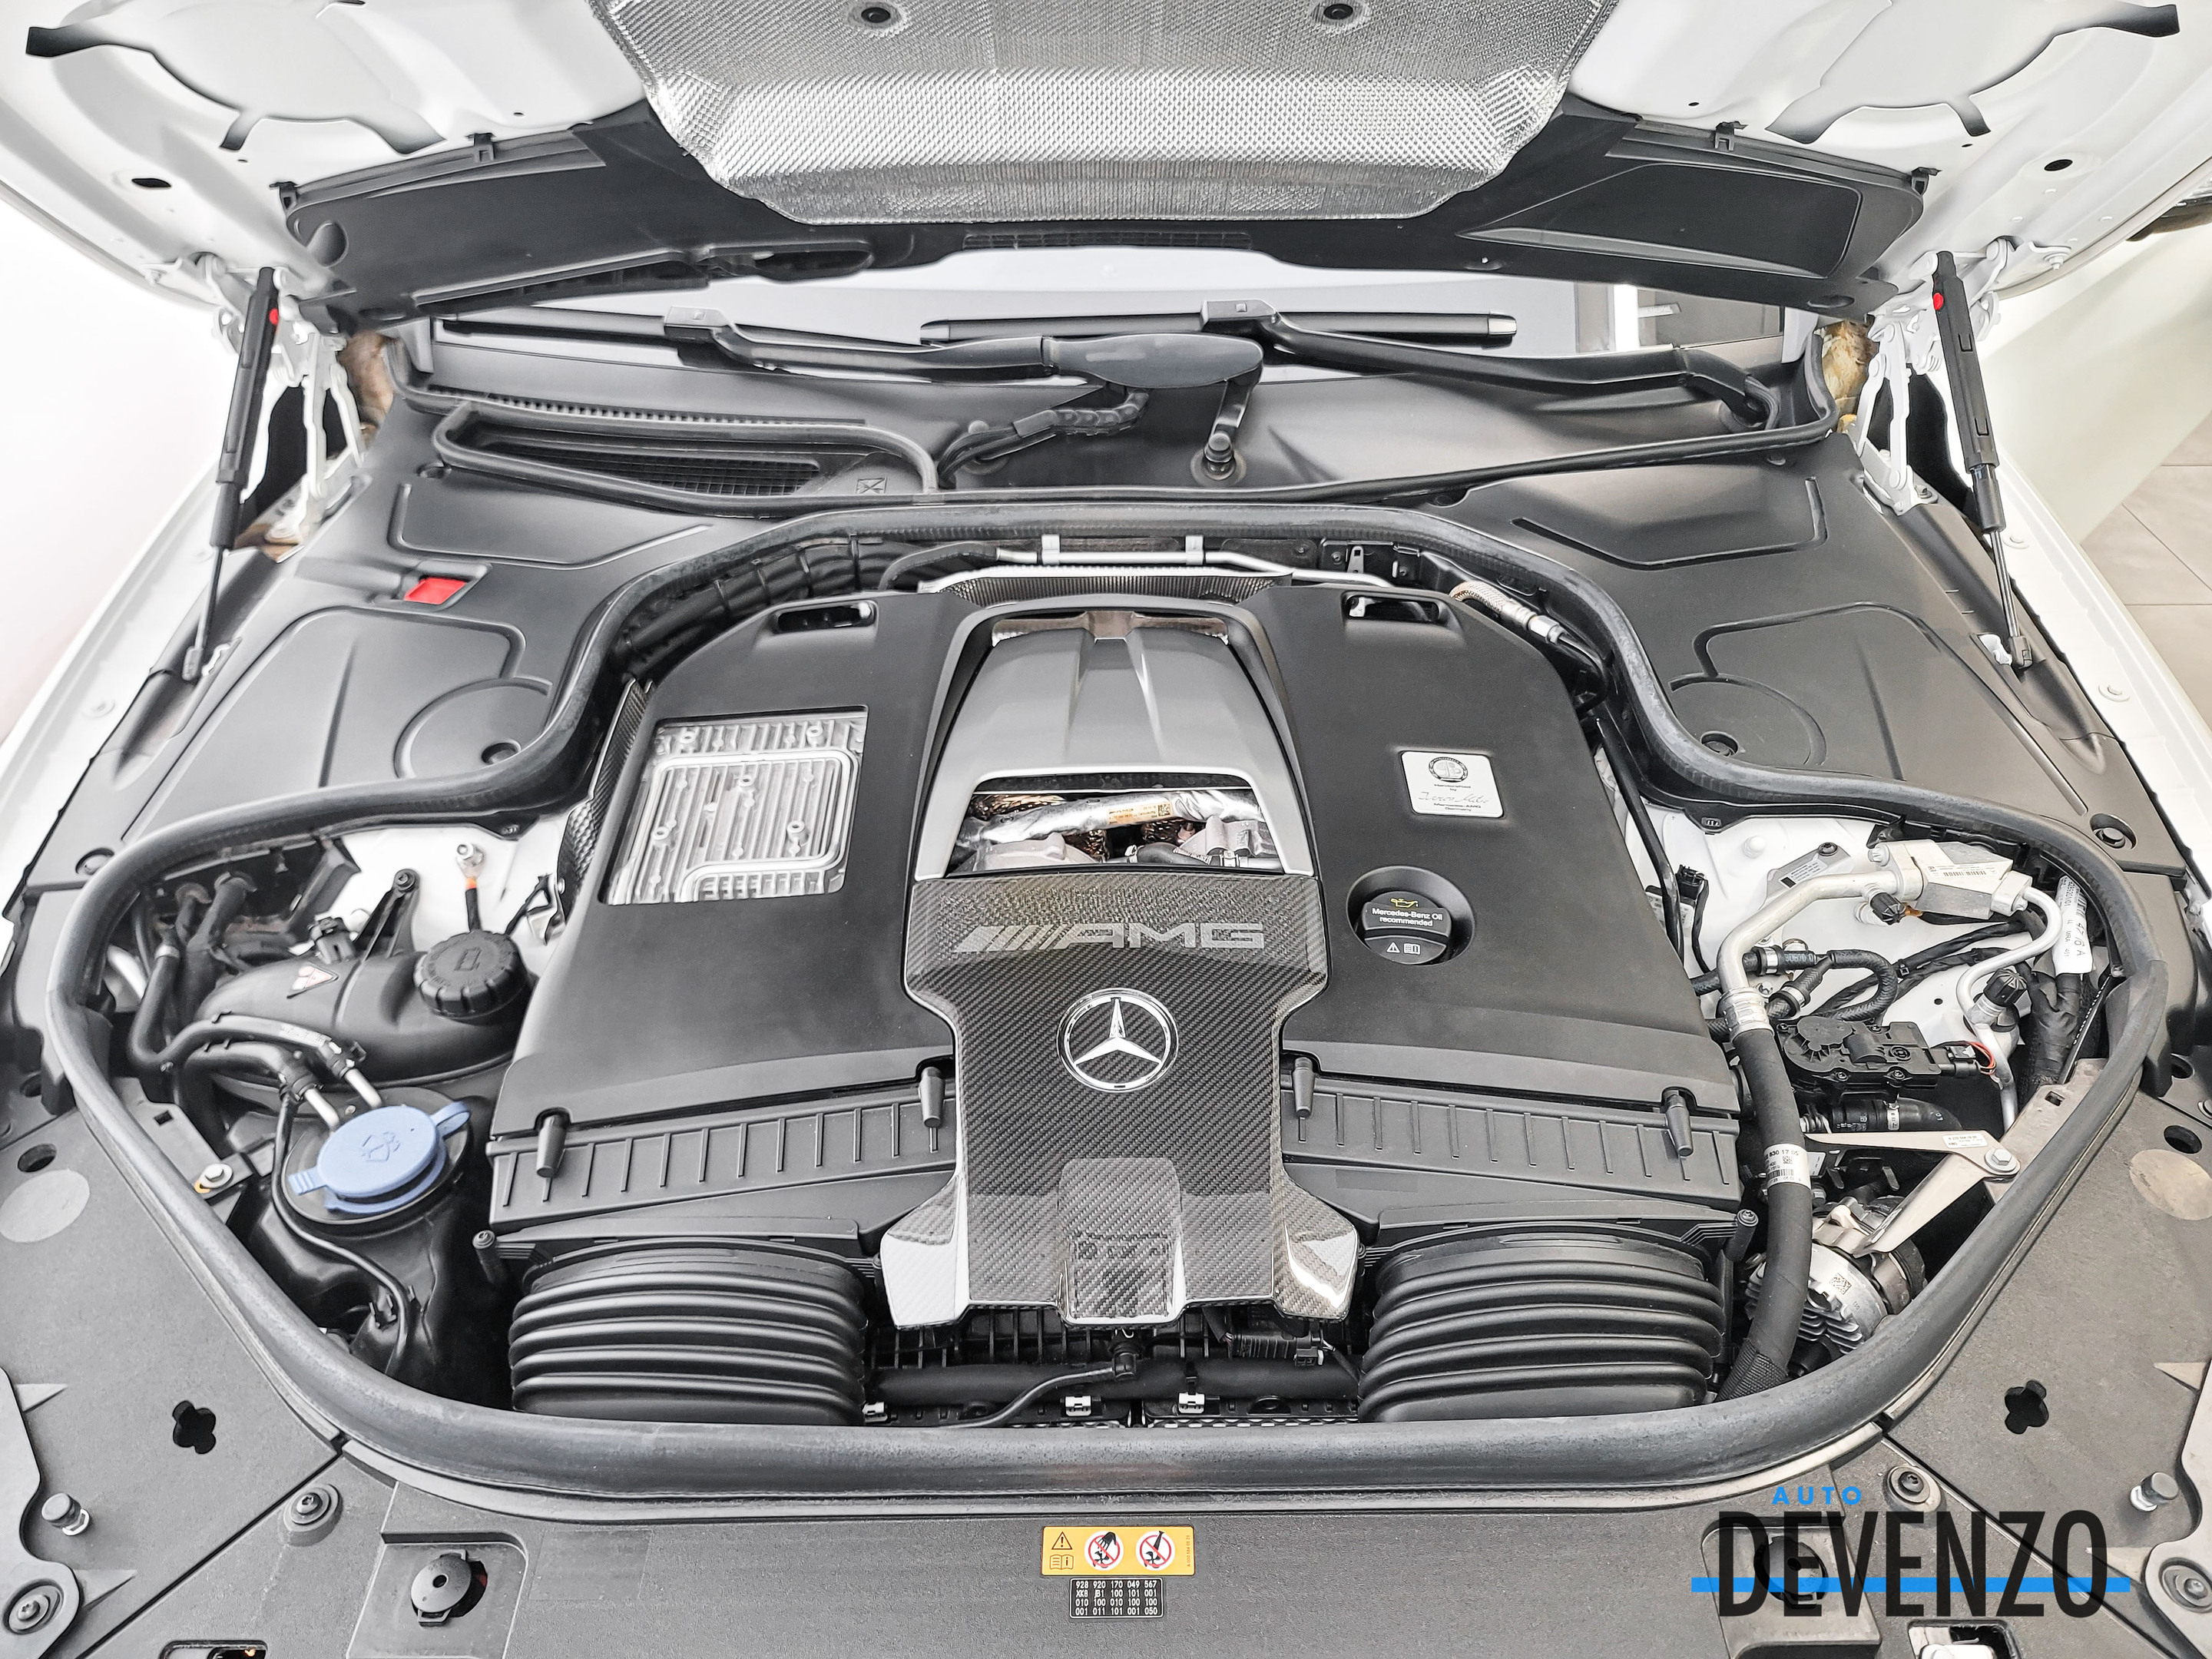 2019 Mercedes-Benz S-Class AMG S63 4MATIC+ Cabriolet 603hp MSRP 254,000$ complet